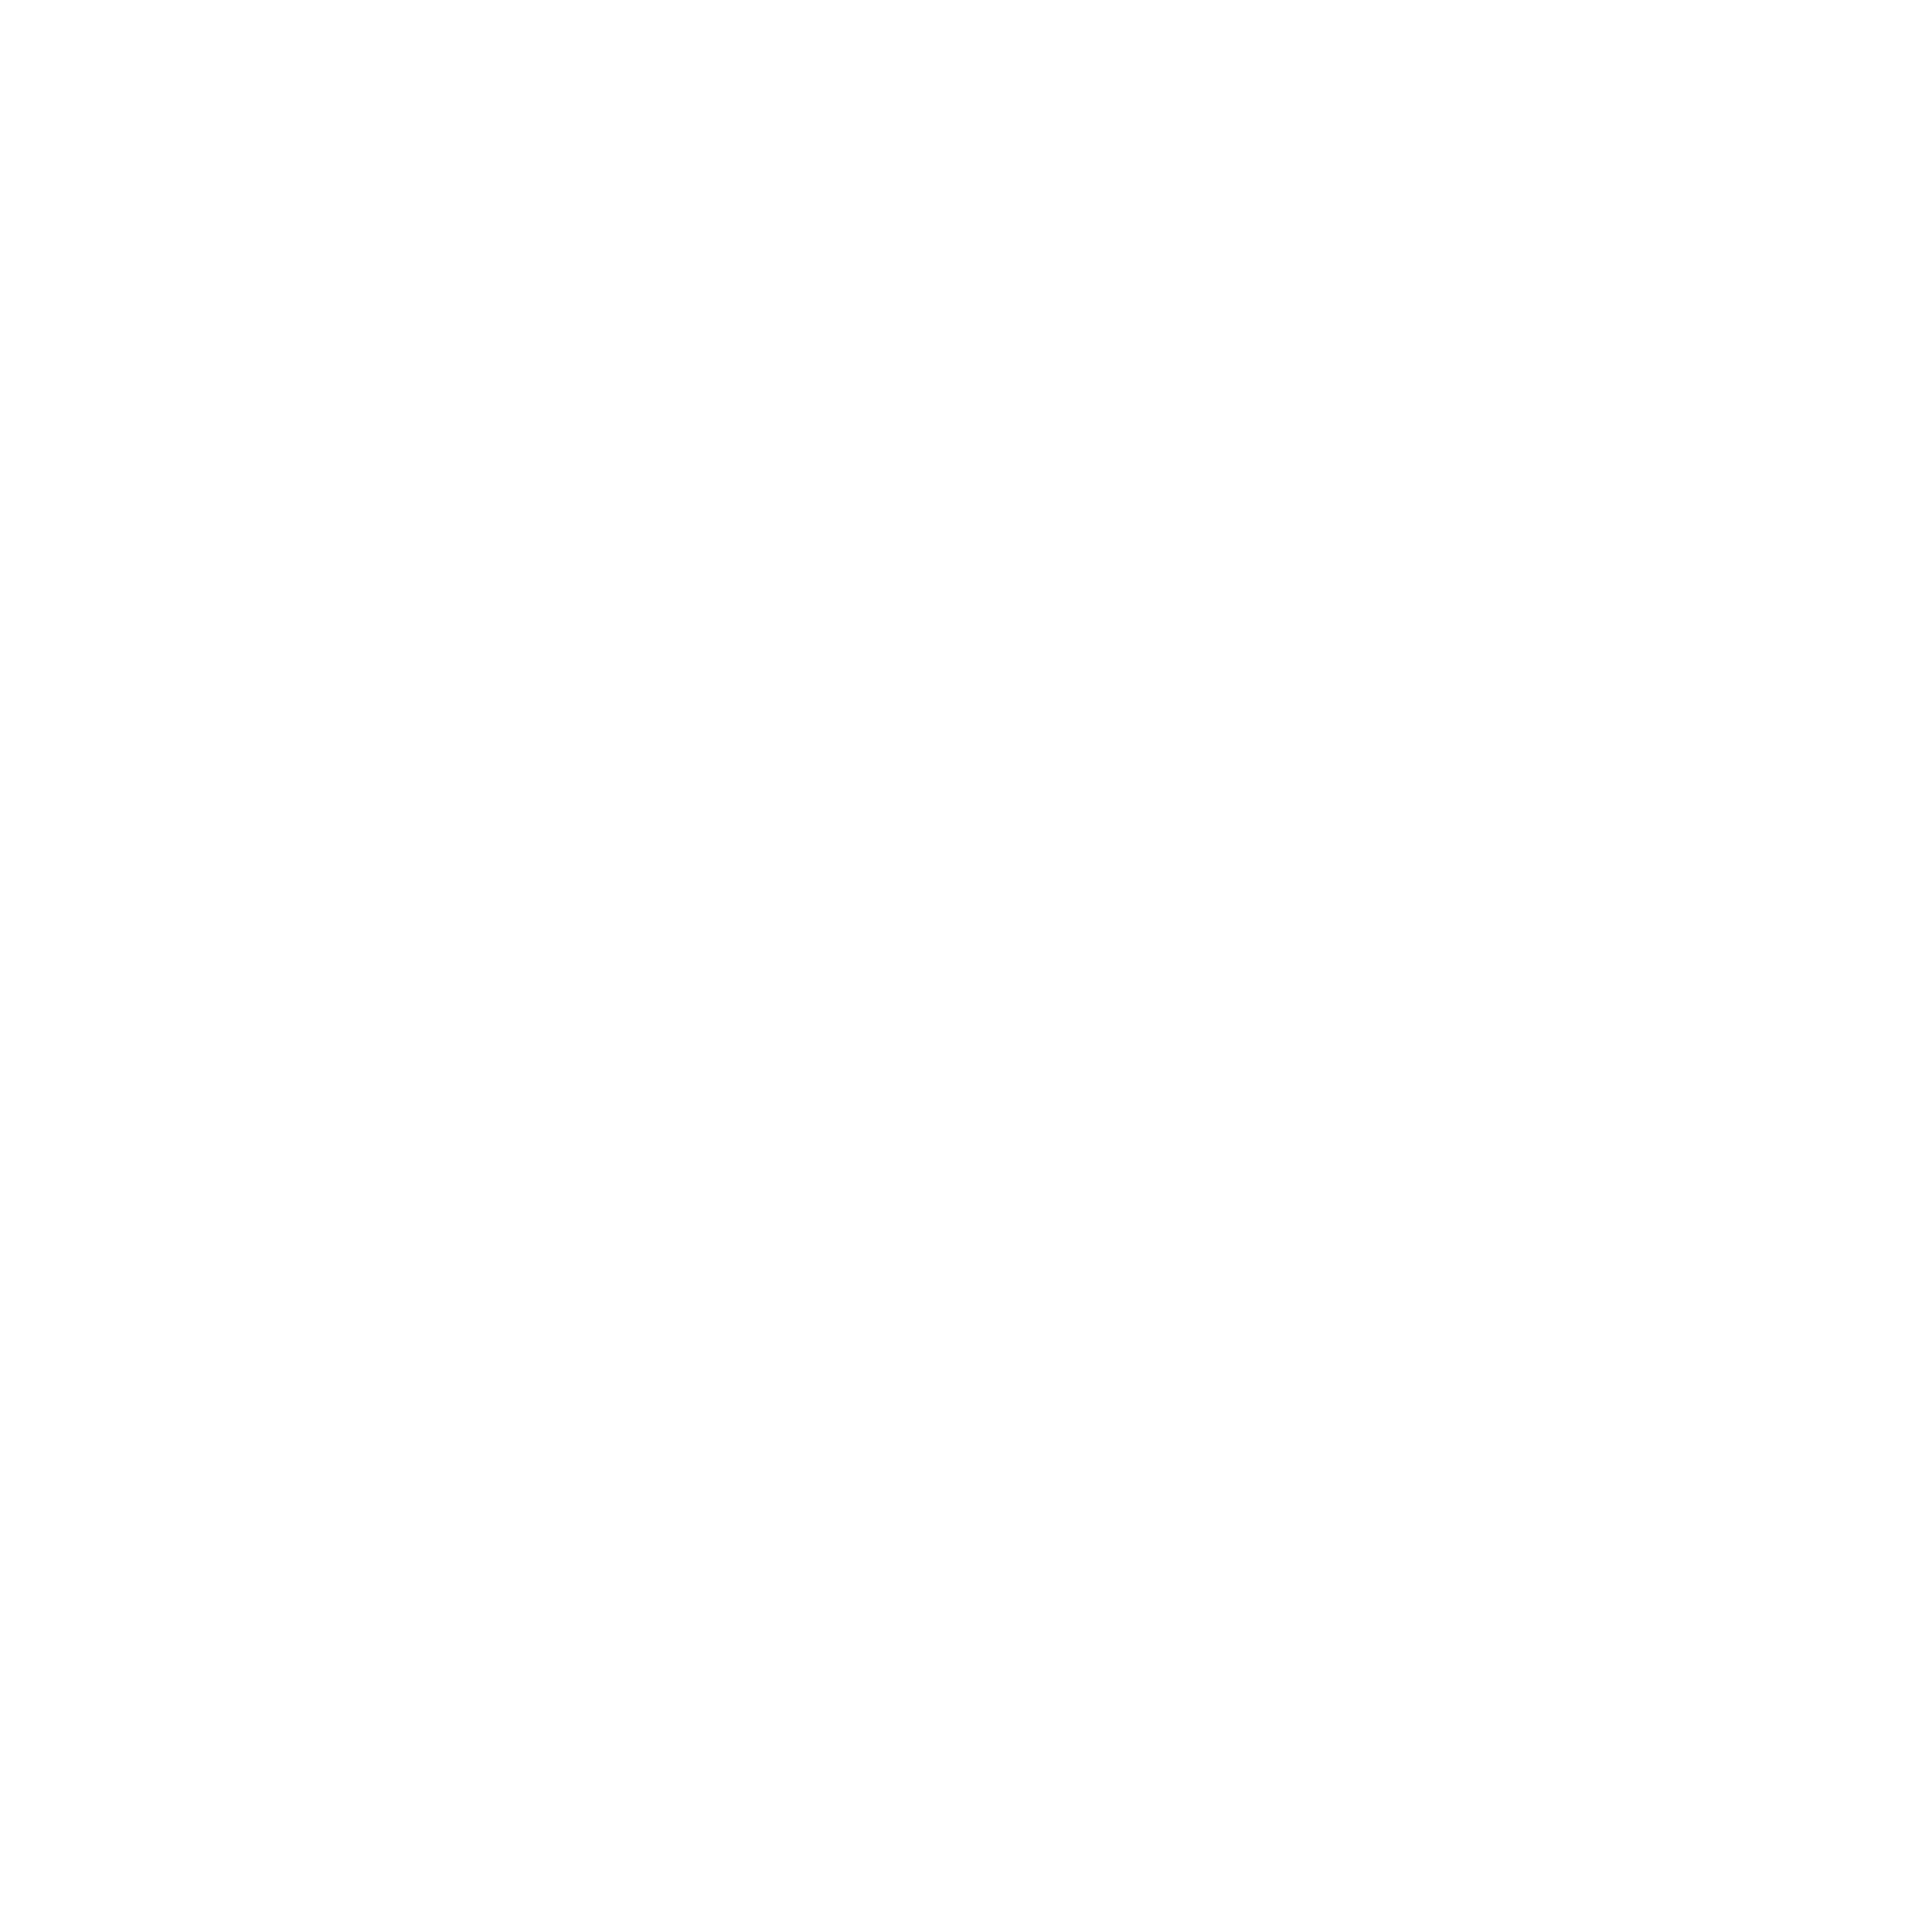 EVERYTHING HAS BEAUTY.png